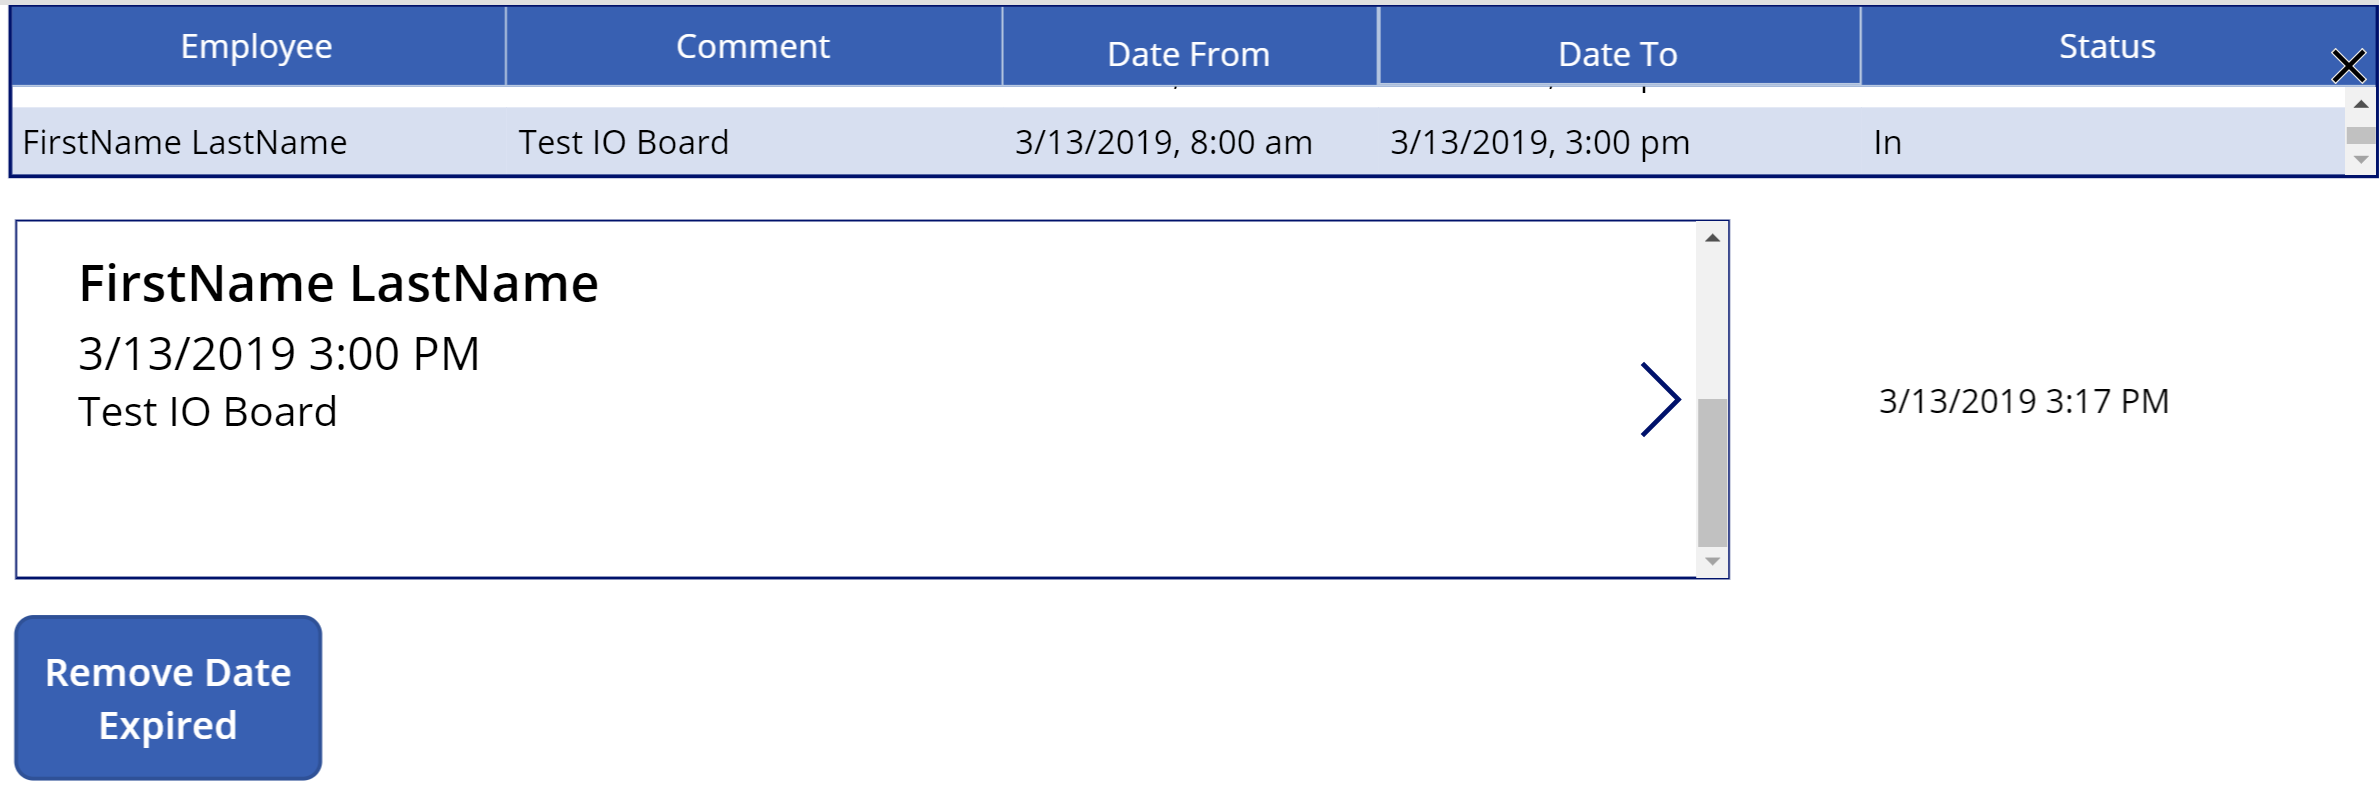 Deleting a Row from SharePoint List with Past Due Dates